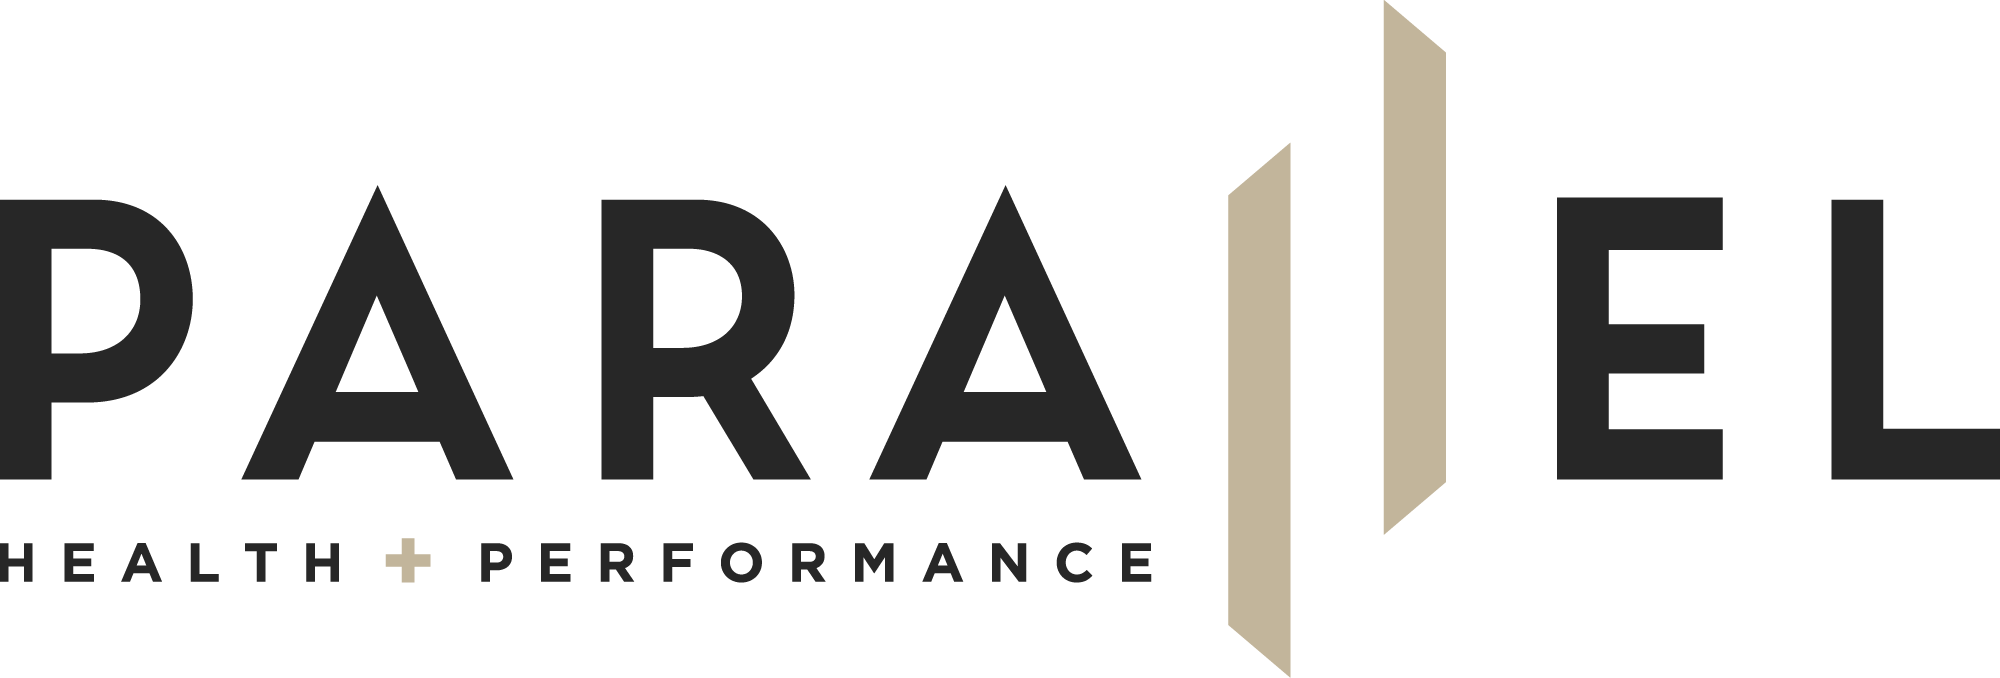 Parallel Health and Performance Logo